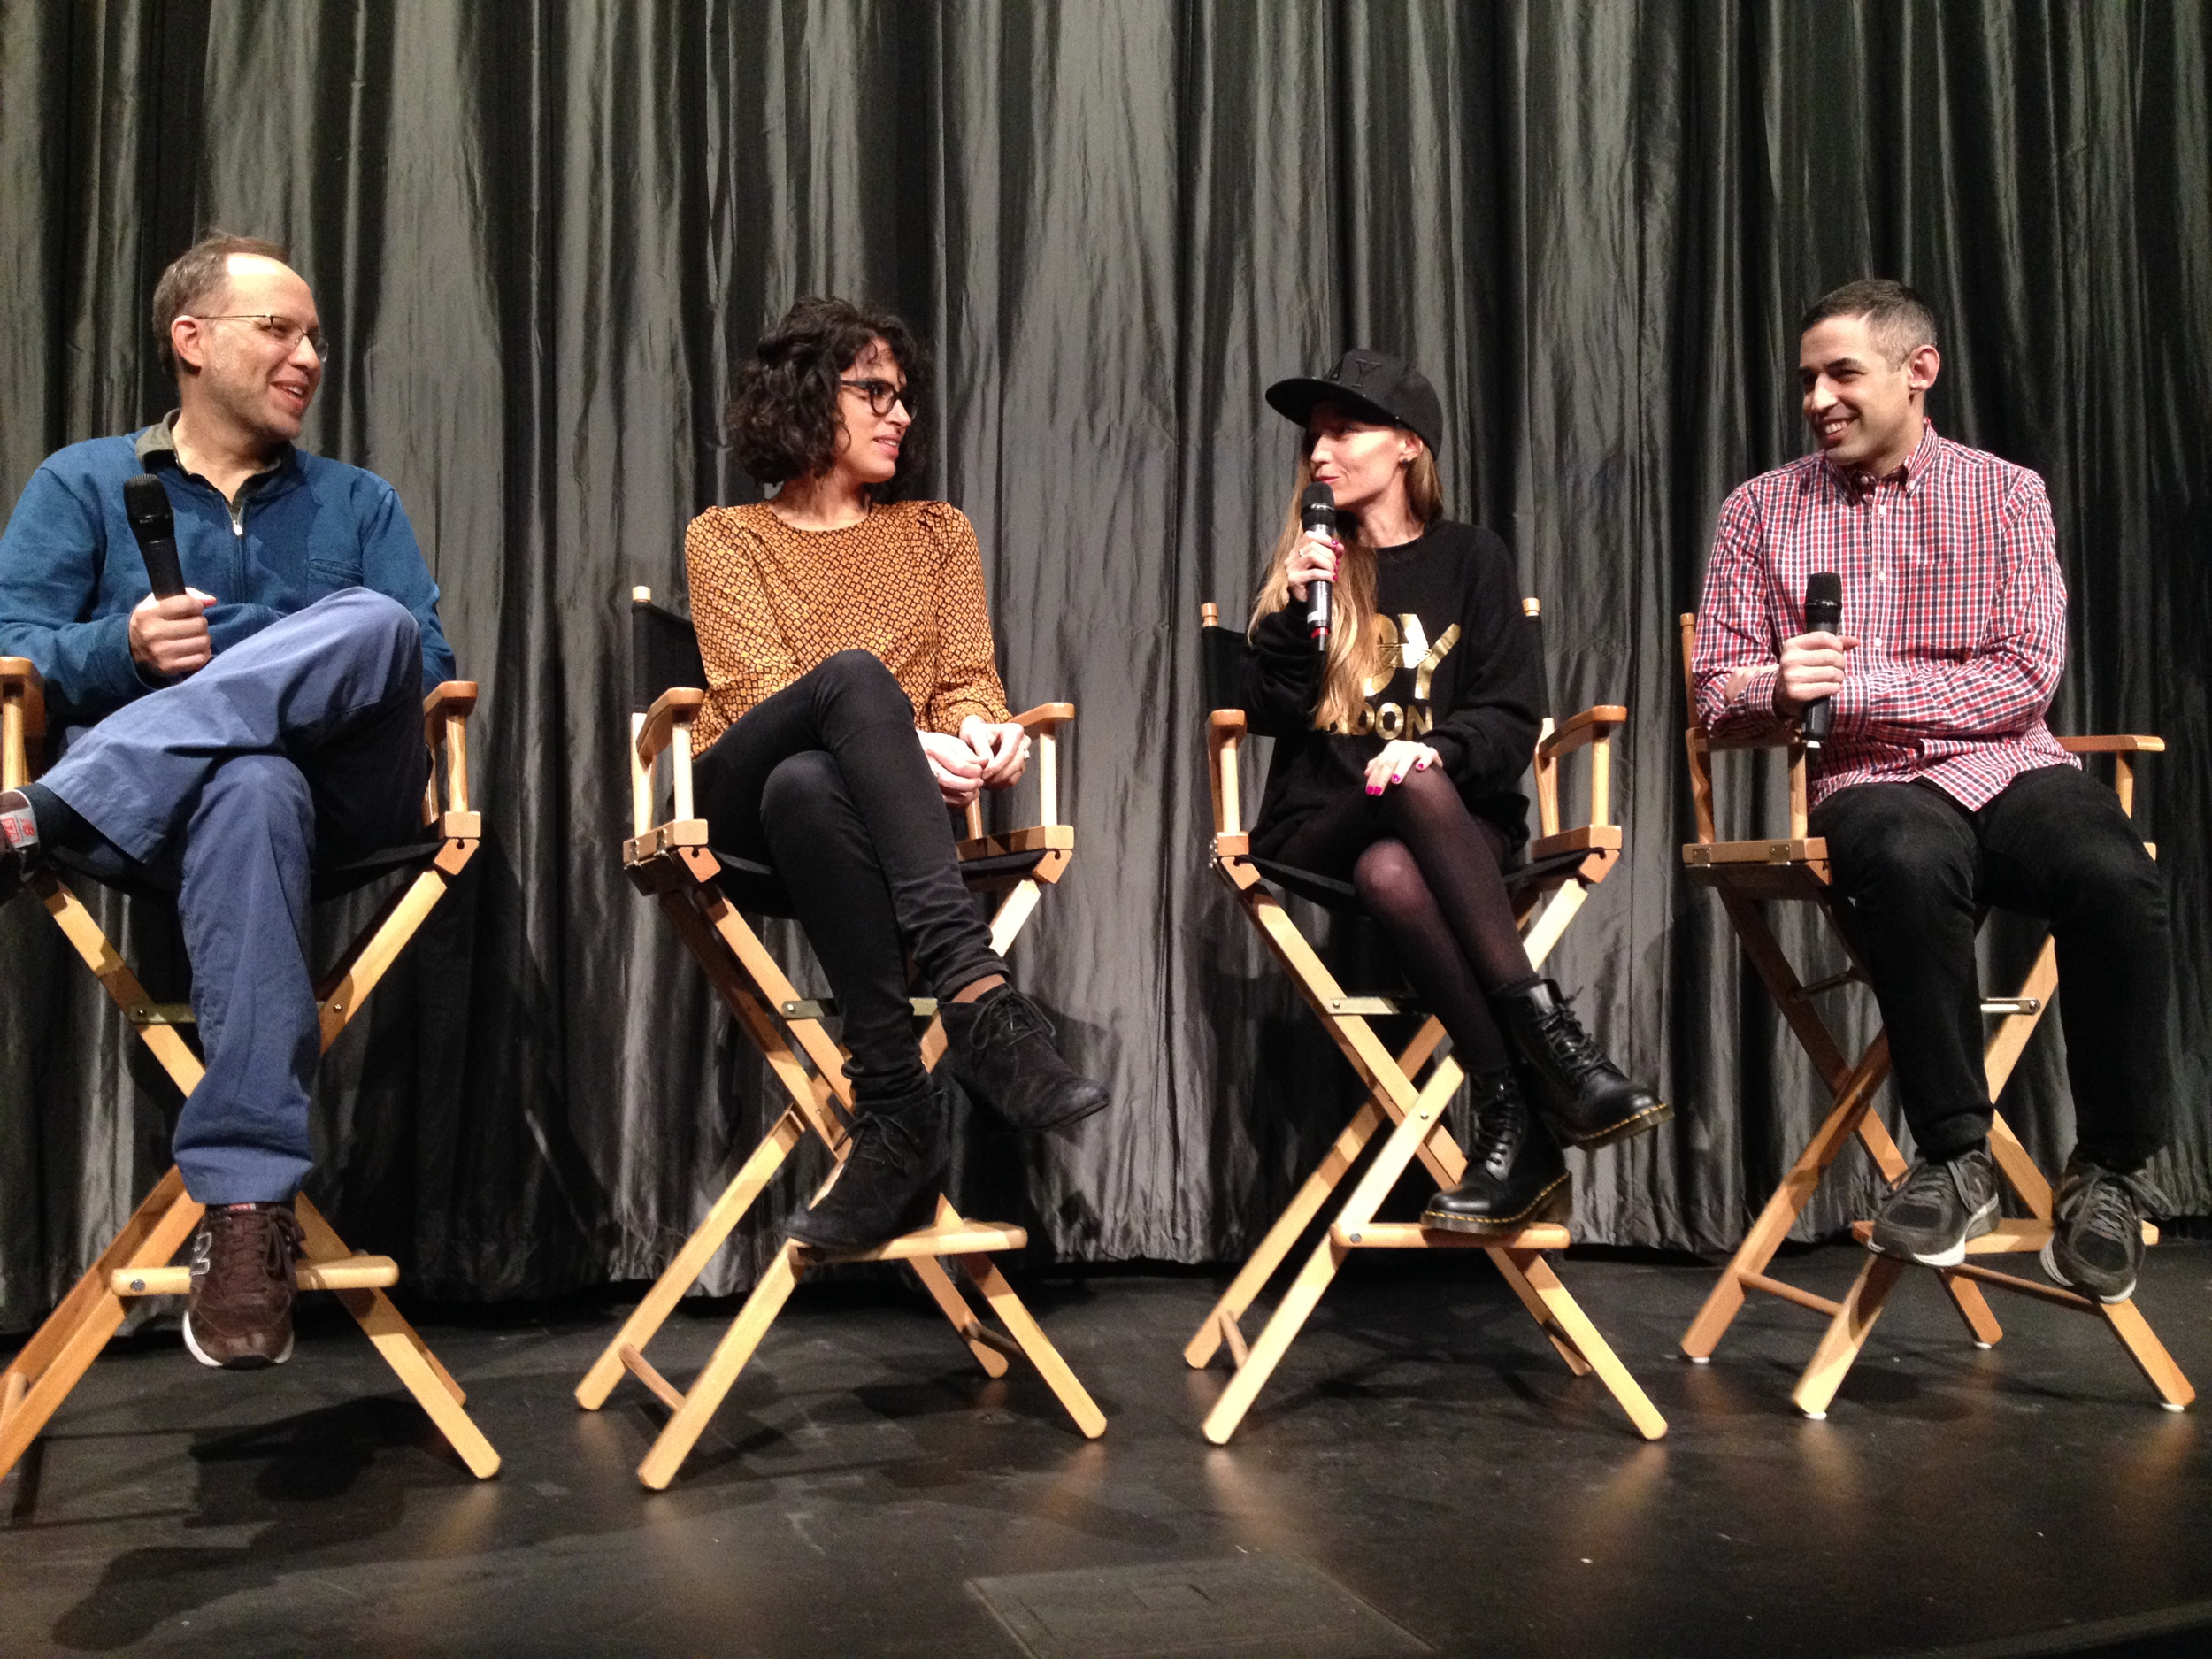 Queer|Art|Film   co-curators Ira Sachs and Adam Baran on stage with presenter Desiree Akhavan and director Marialy Rivas at the 2015 screening of  Young and Wild.  (Photo by Vanessa Haroutunian)